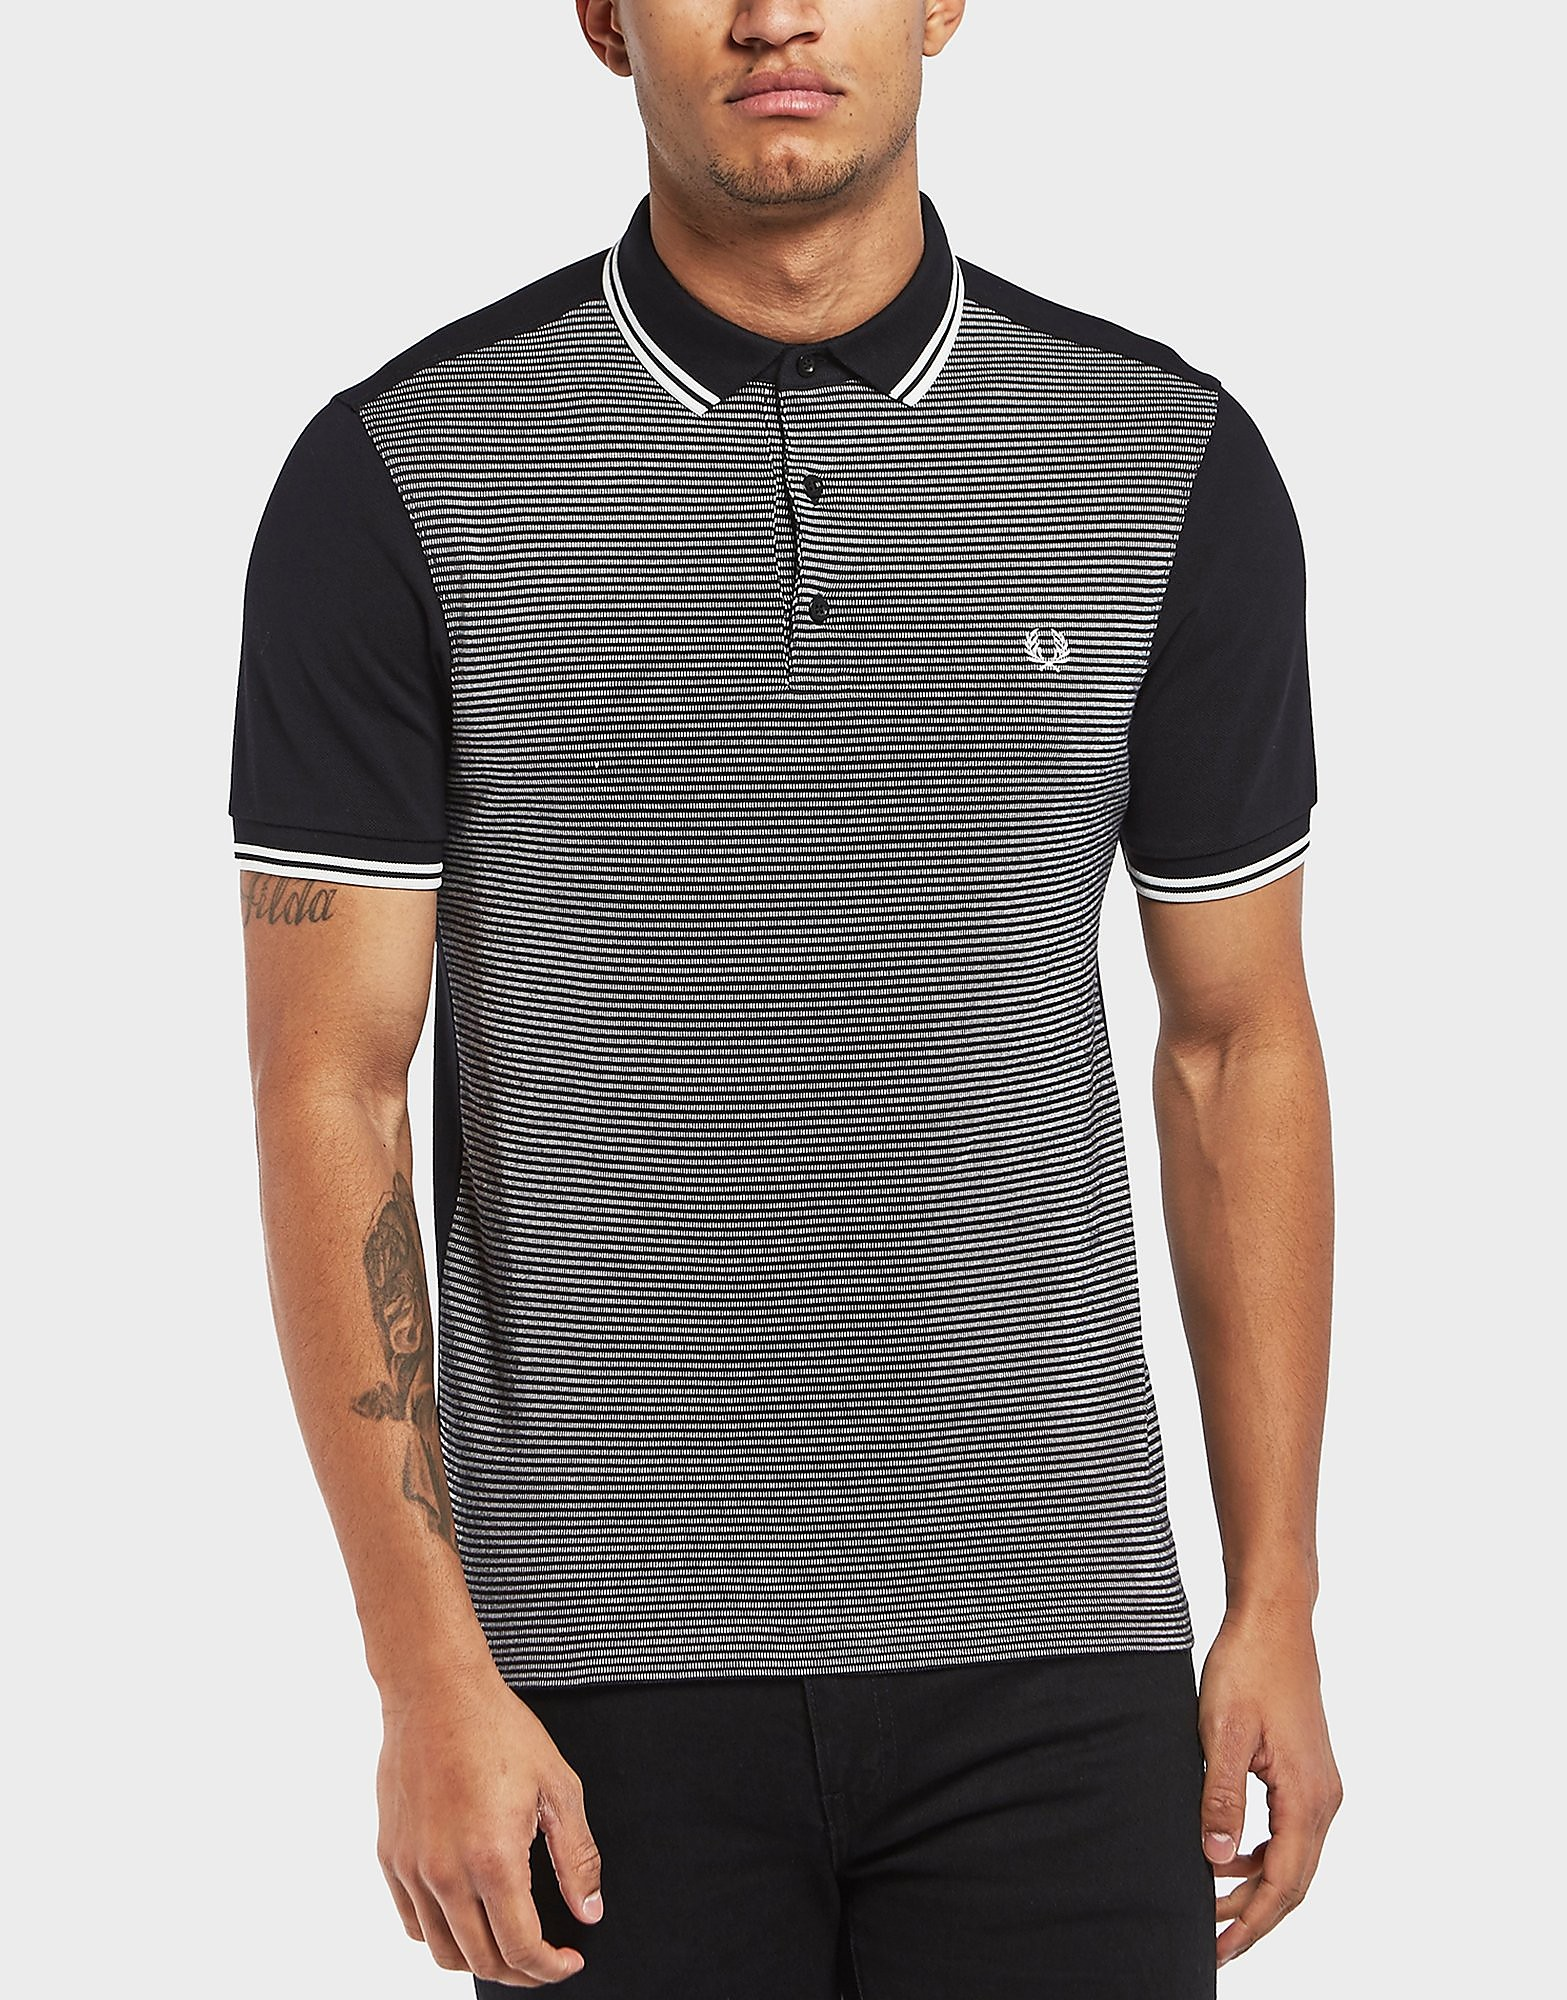 Fred Perry Jacquard Tipped Short Sleeve Polo Shirt